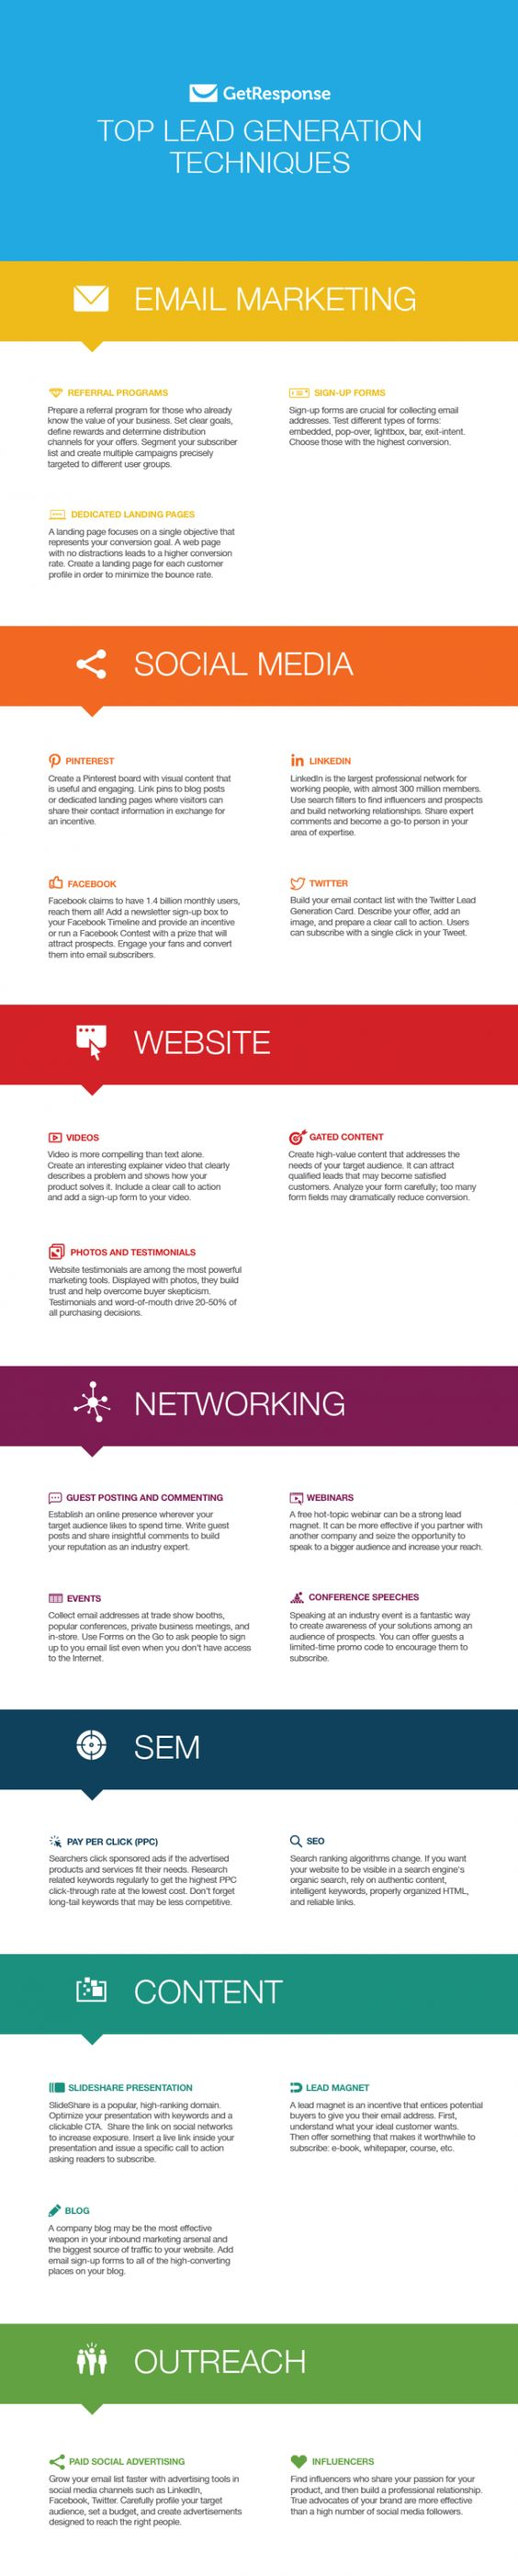 Infographic Of The Week:  Top Lead Generation Techniques